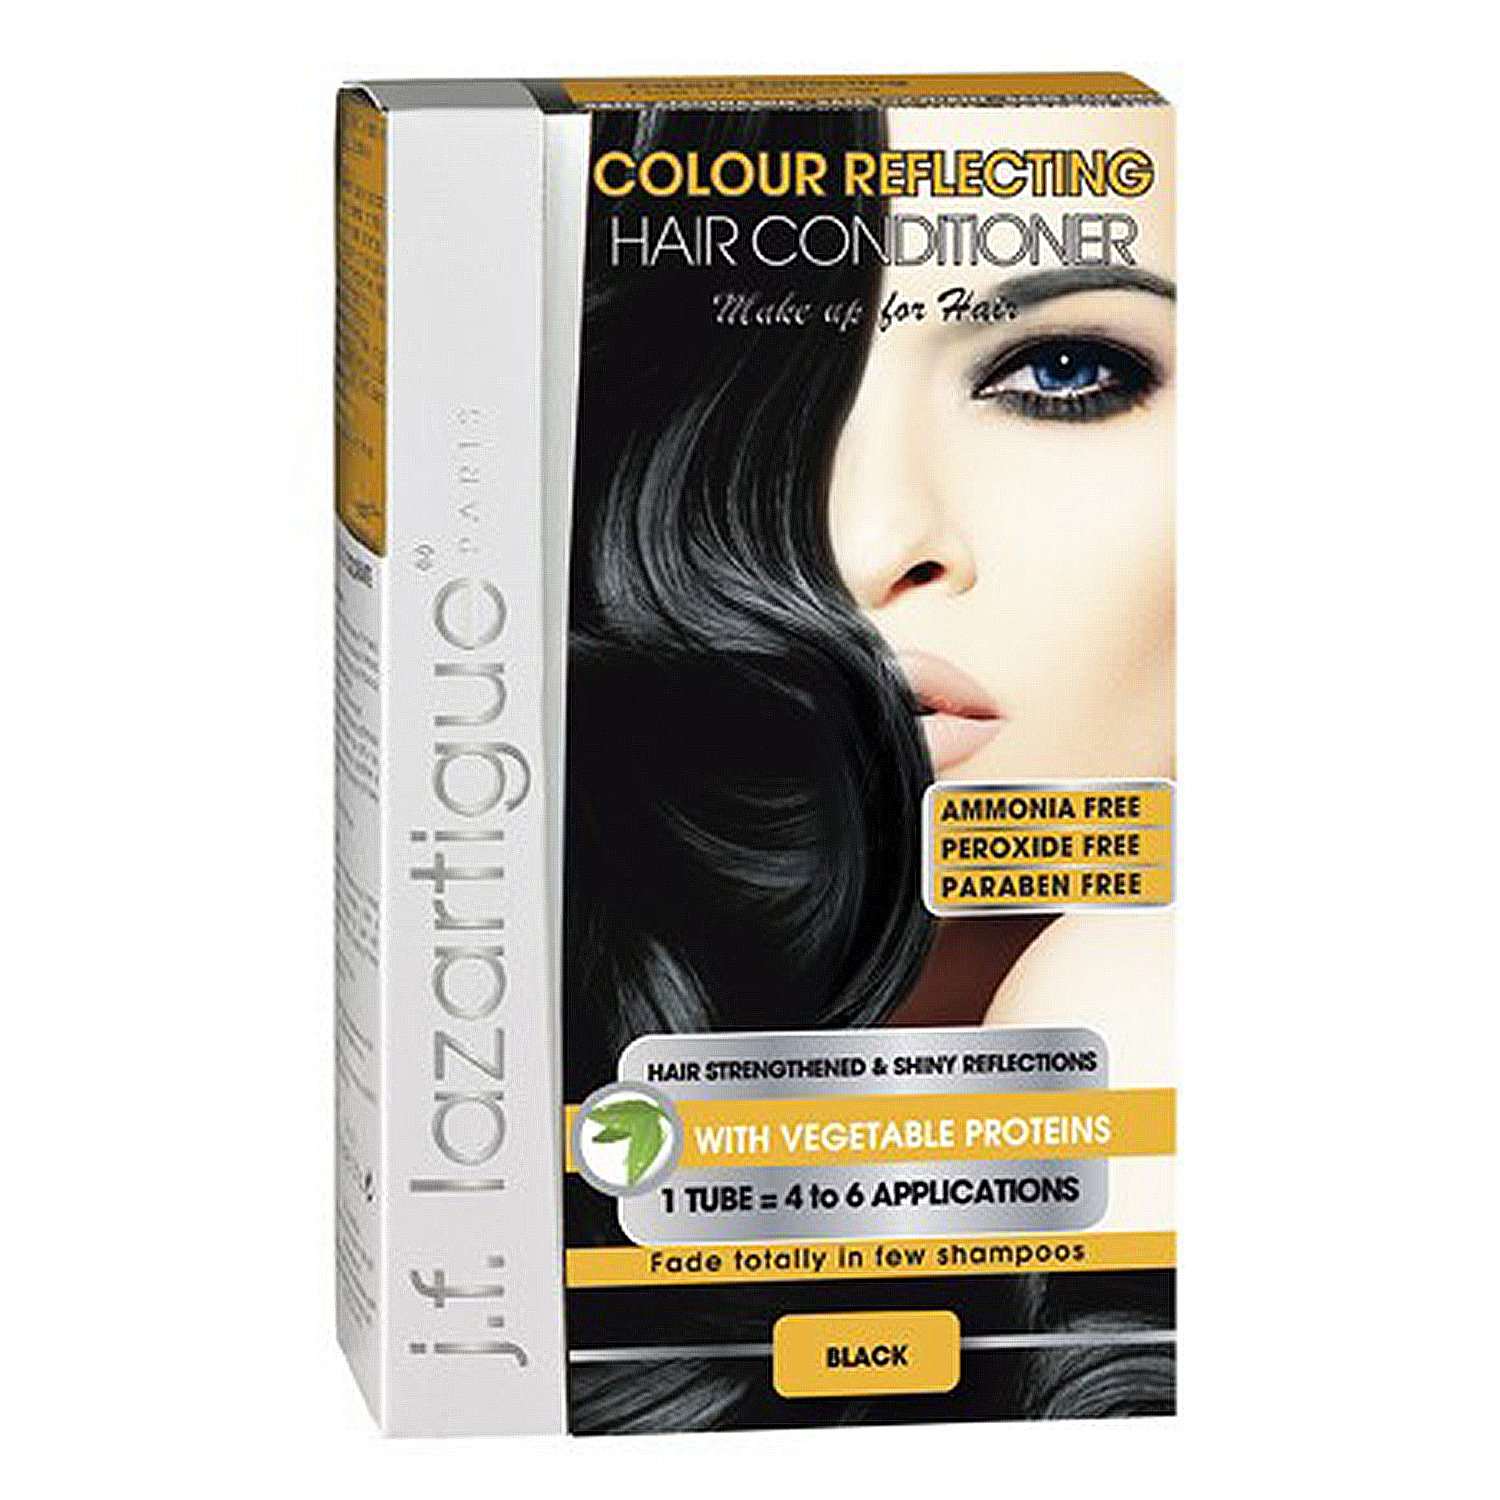 Colour Reflecting Hair Conditionner (Black) by